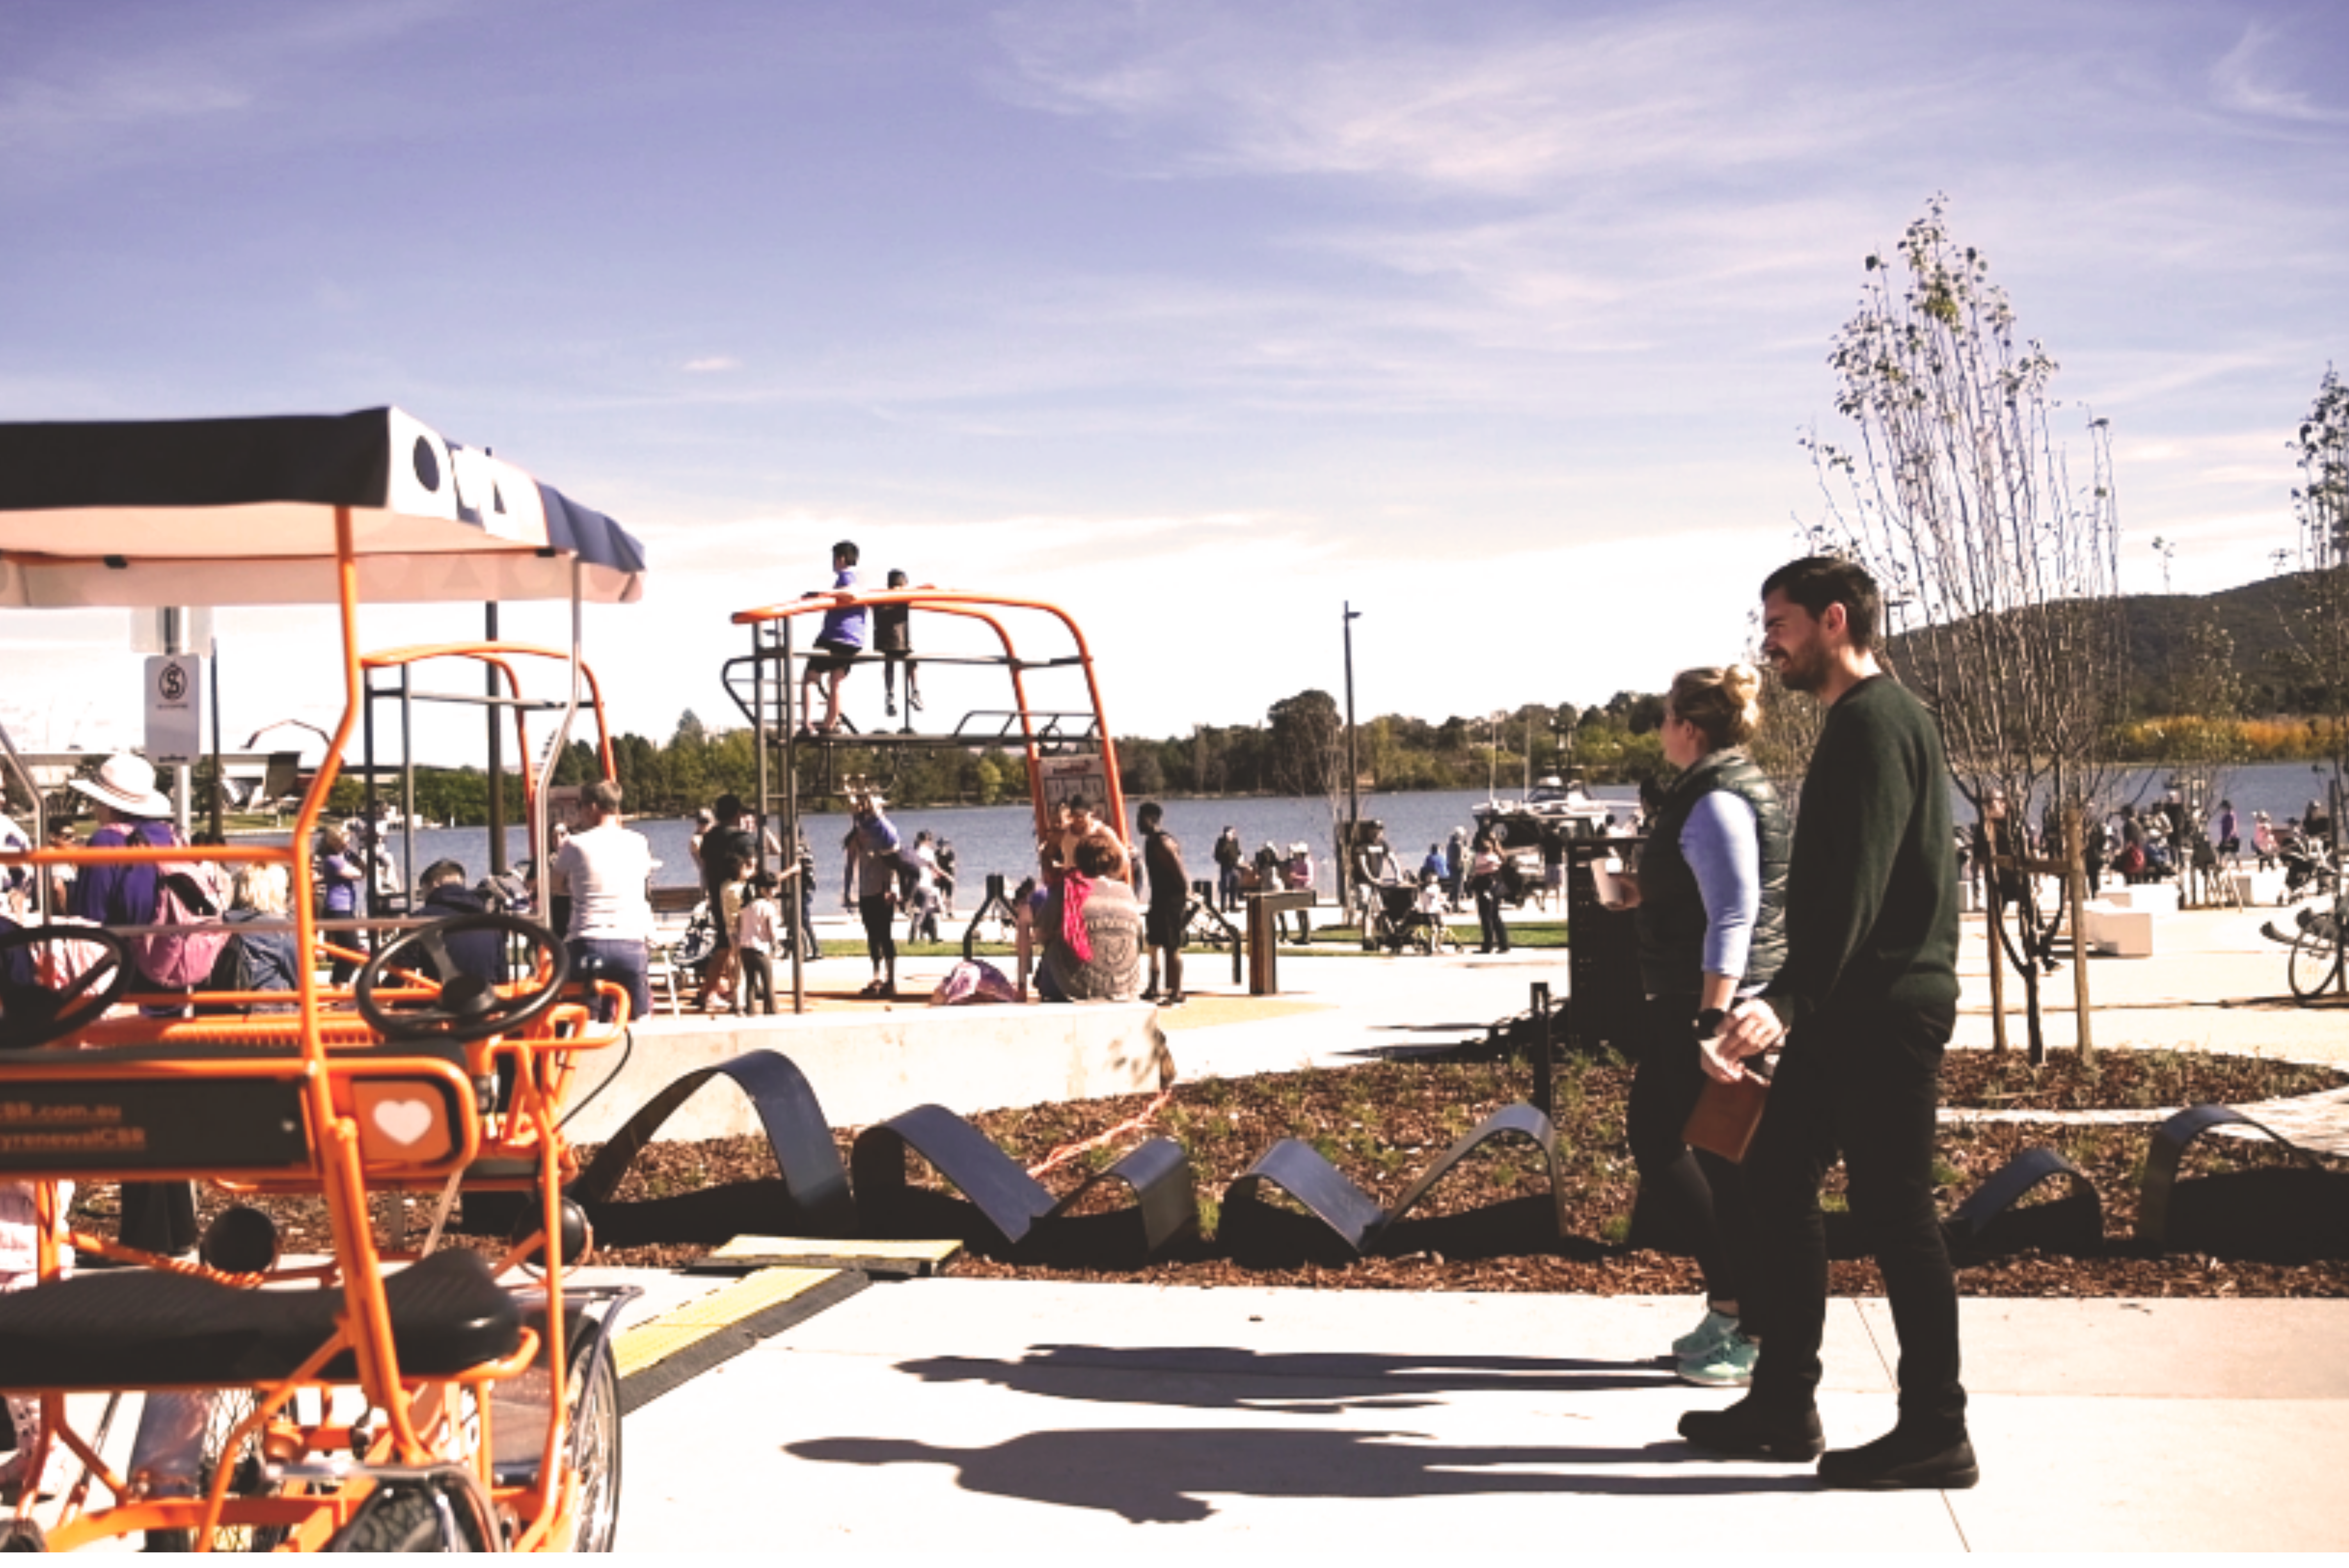 Henry Rolland Park opening, crowds walking, talking and playing